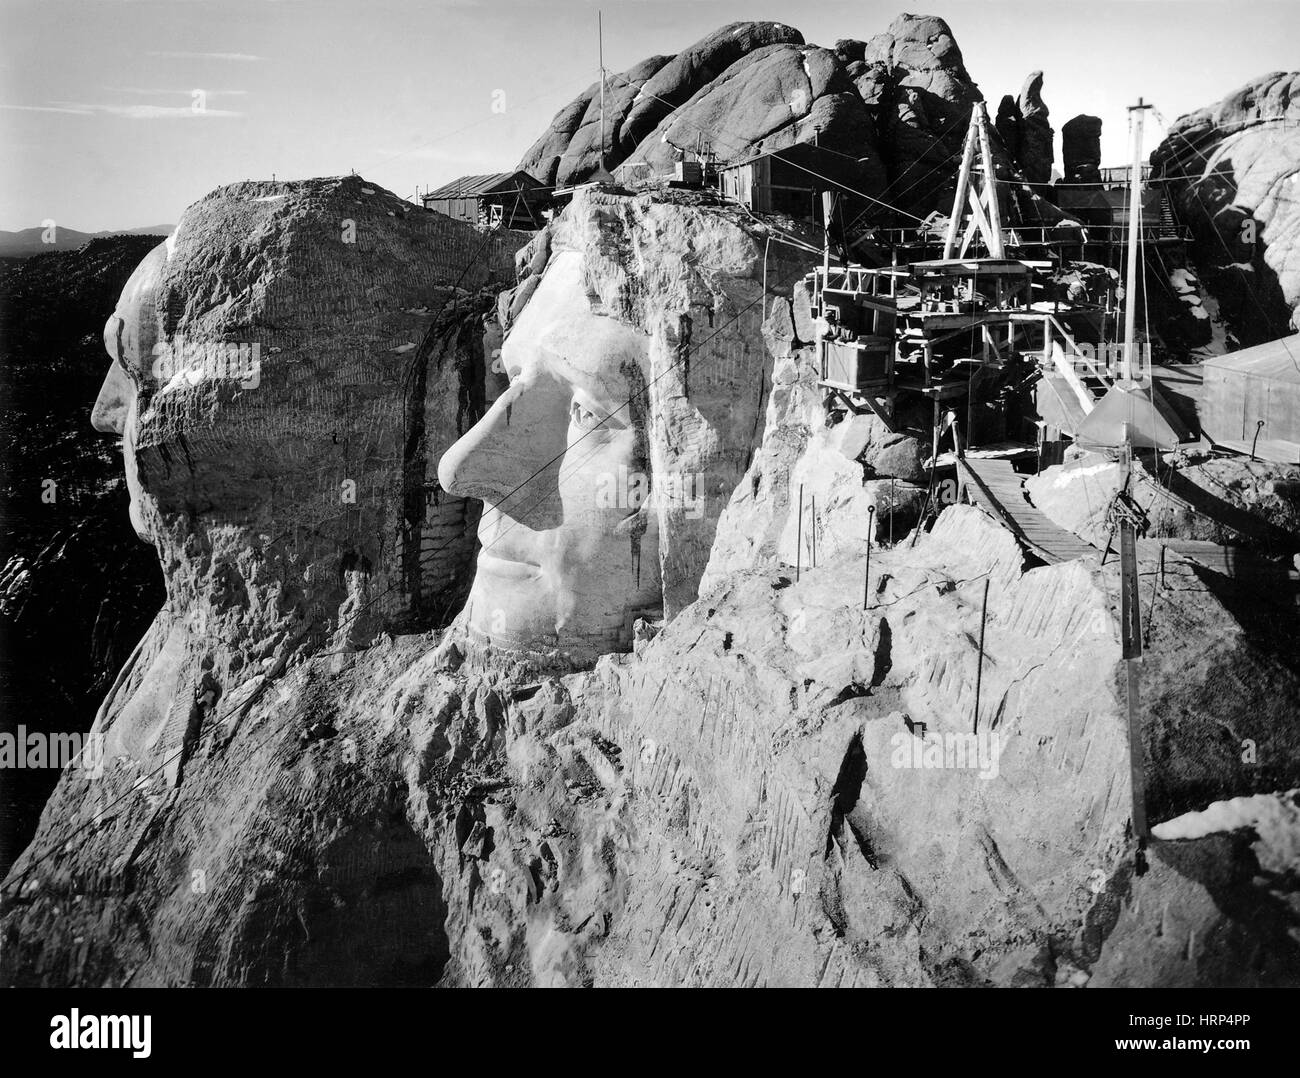 Mount Rushmore Construction Site, 1930s - Stock Image